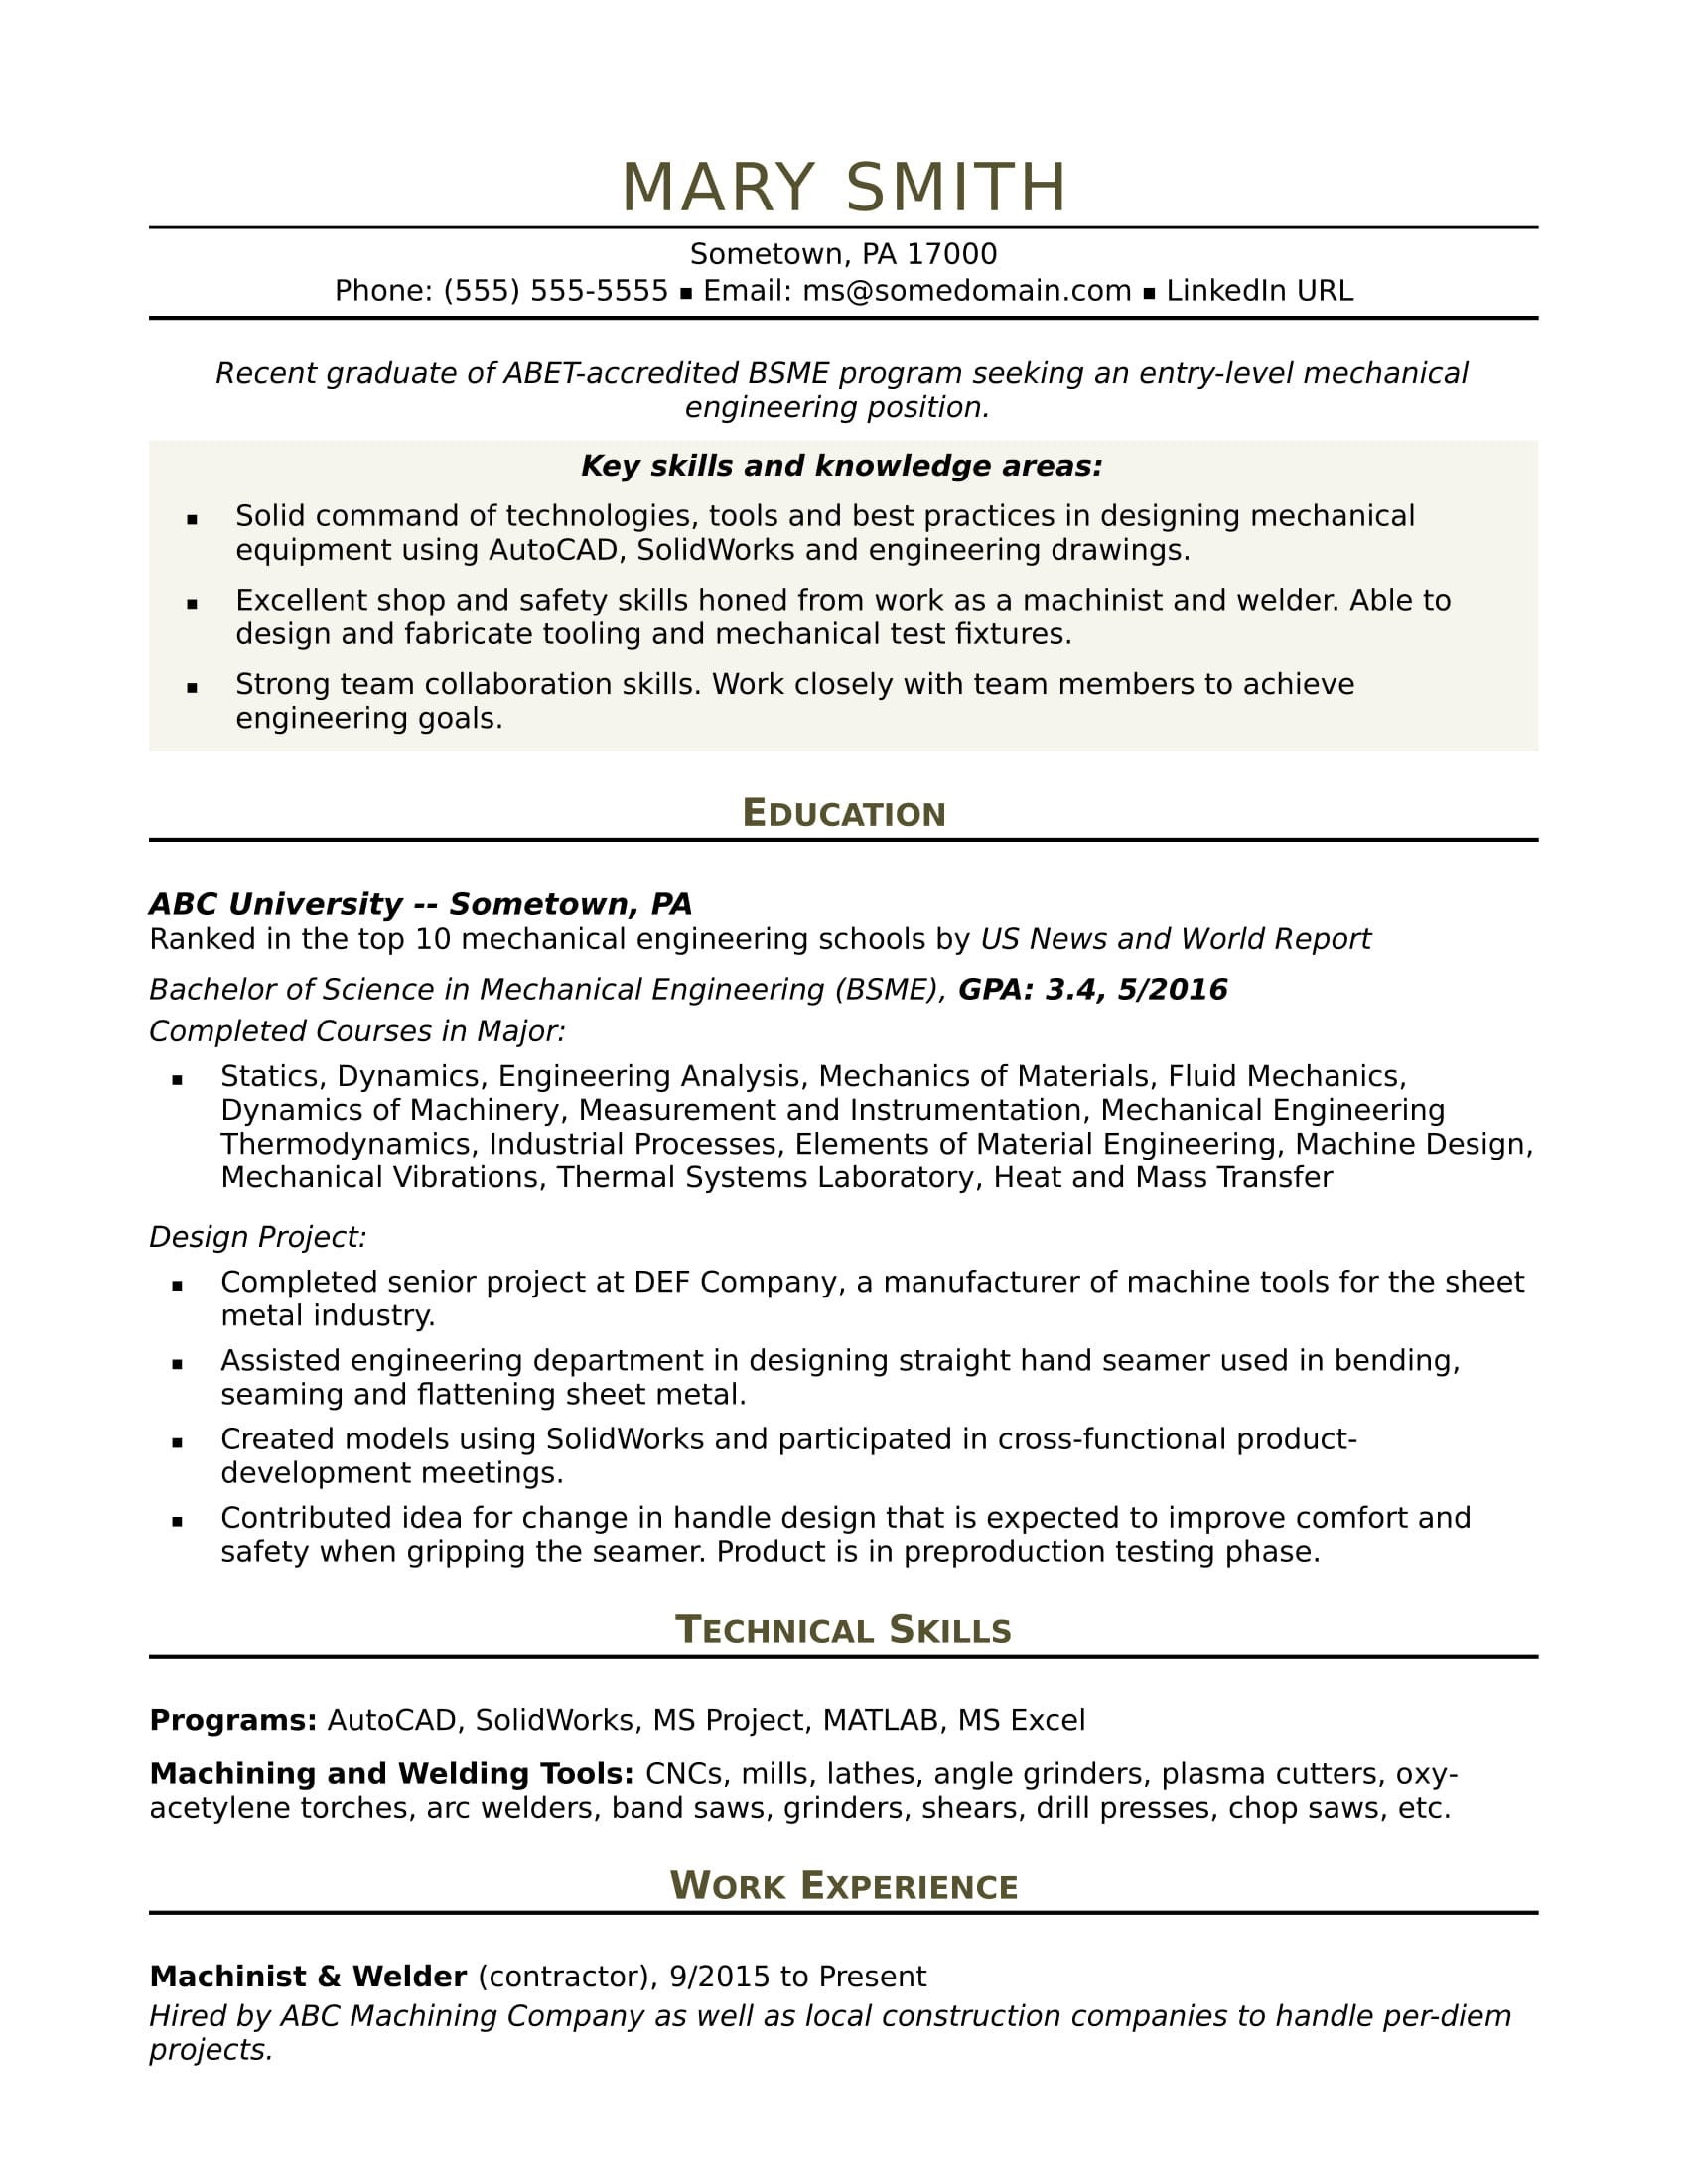 sample resume for an entry level mechanical engineer monster materials attorney templates Resume Materials Engineer Resume